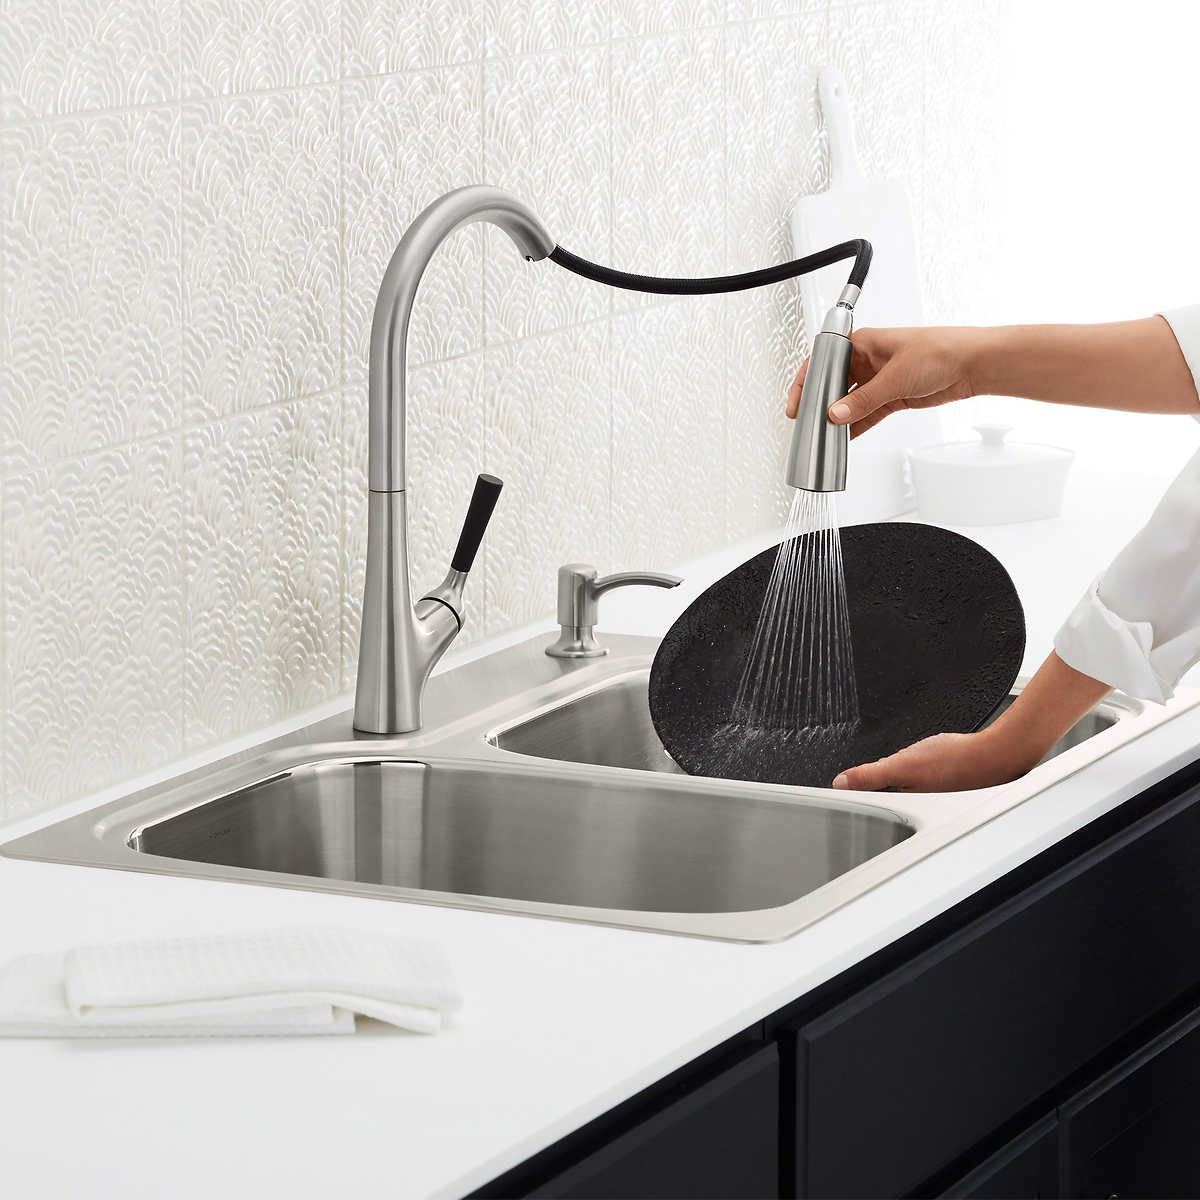 Kohler Stainless Steel Sink And Malleco Pull Down Kitchen Faucet